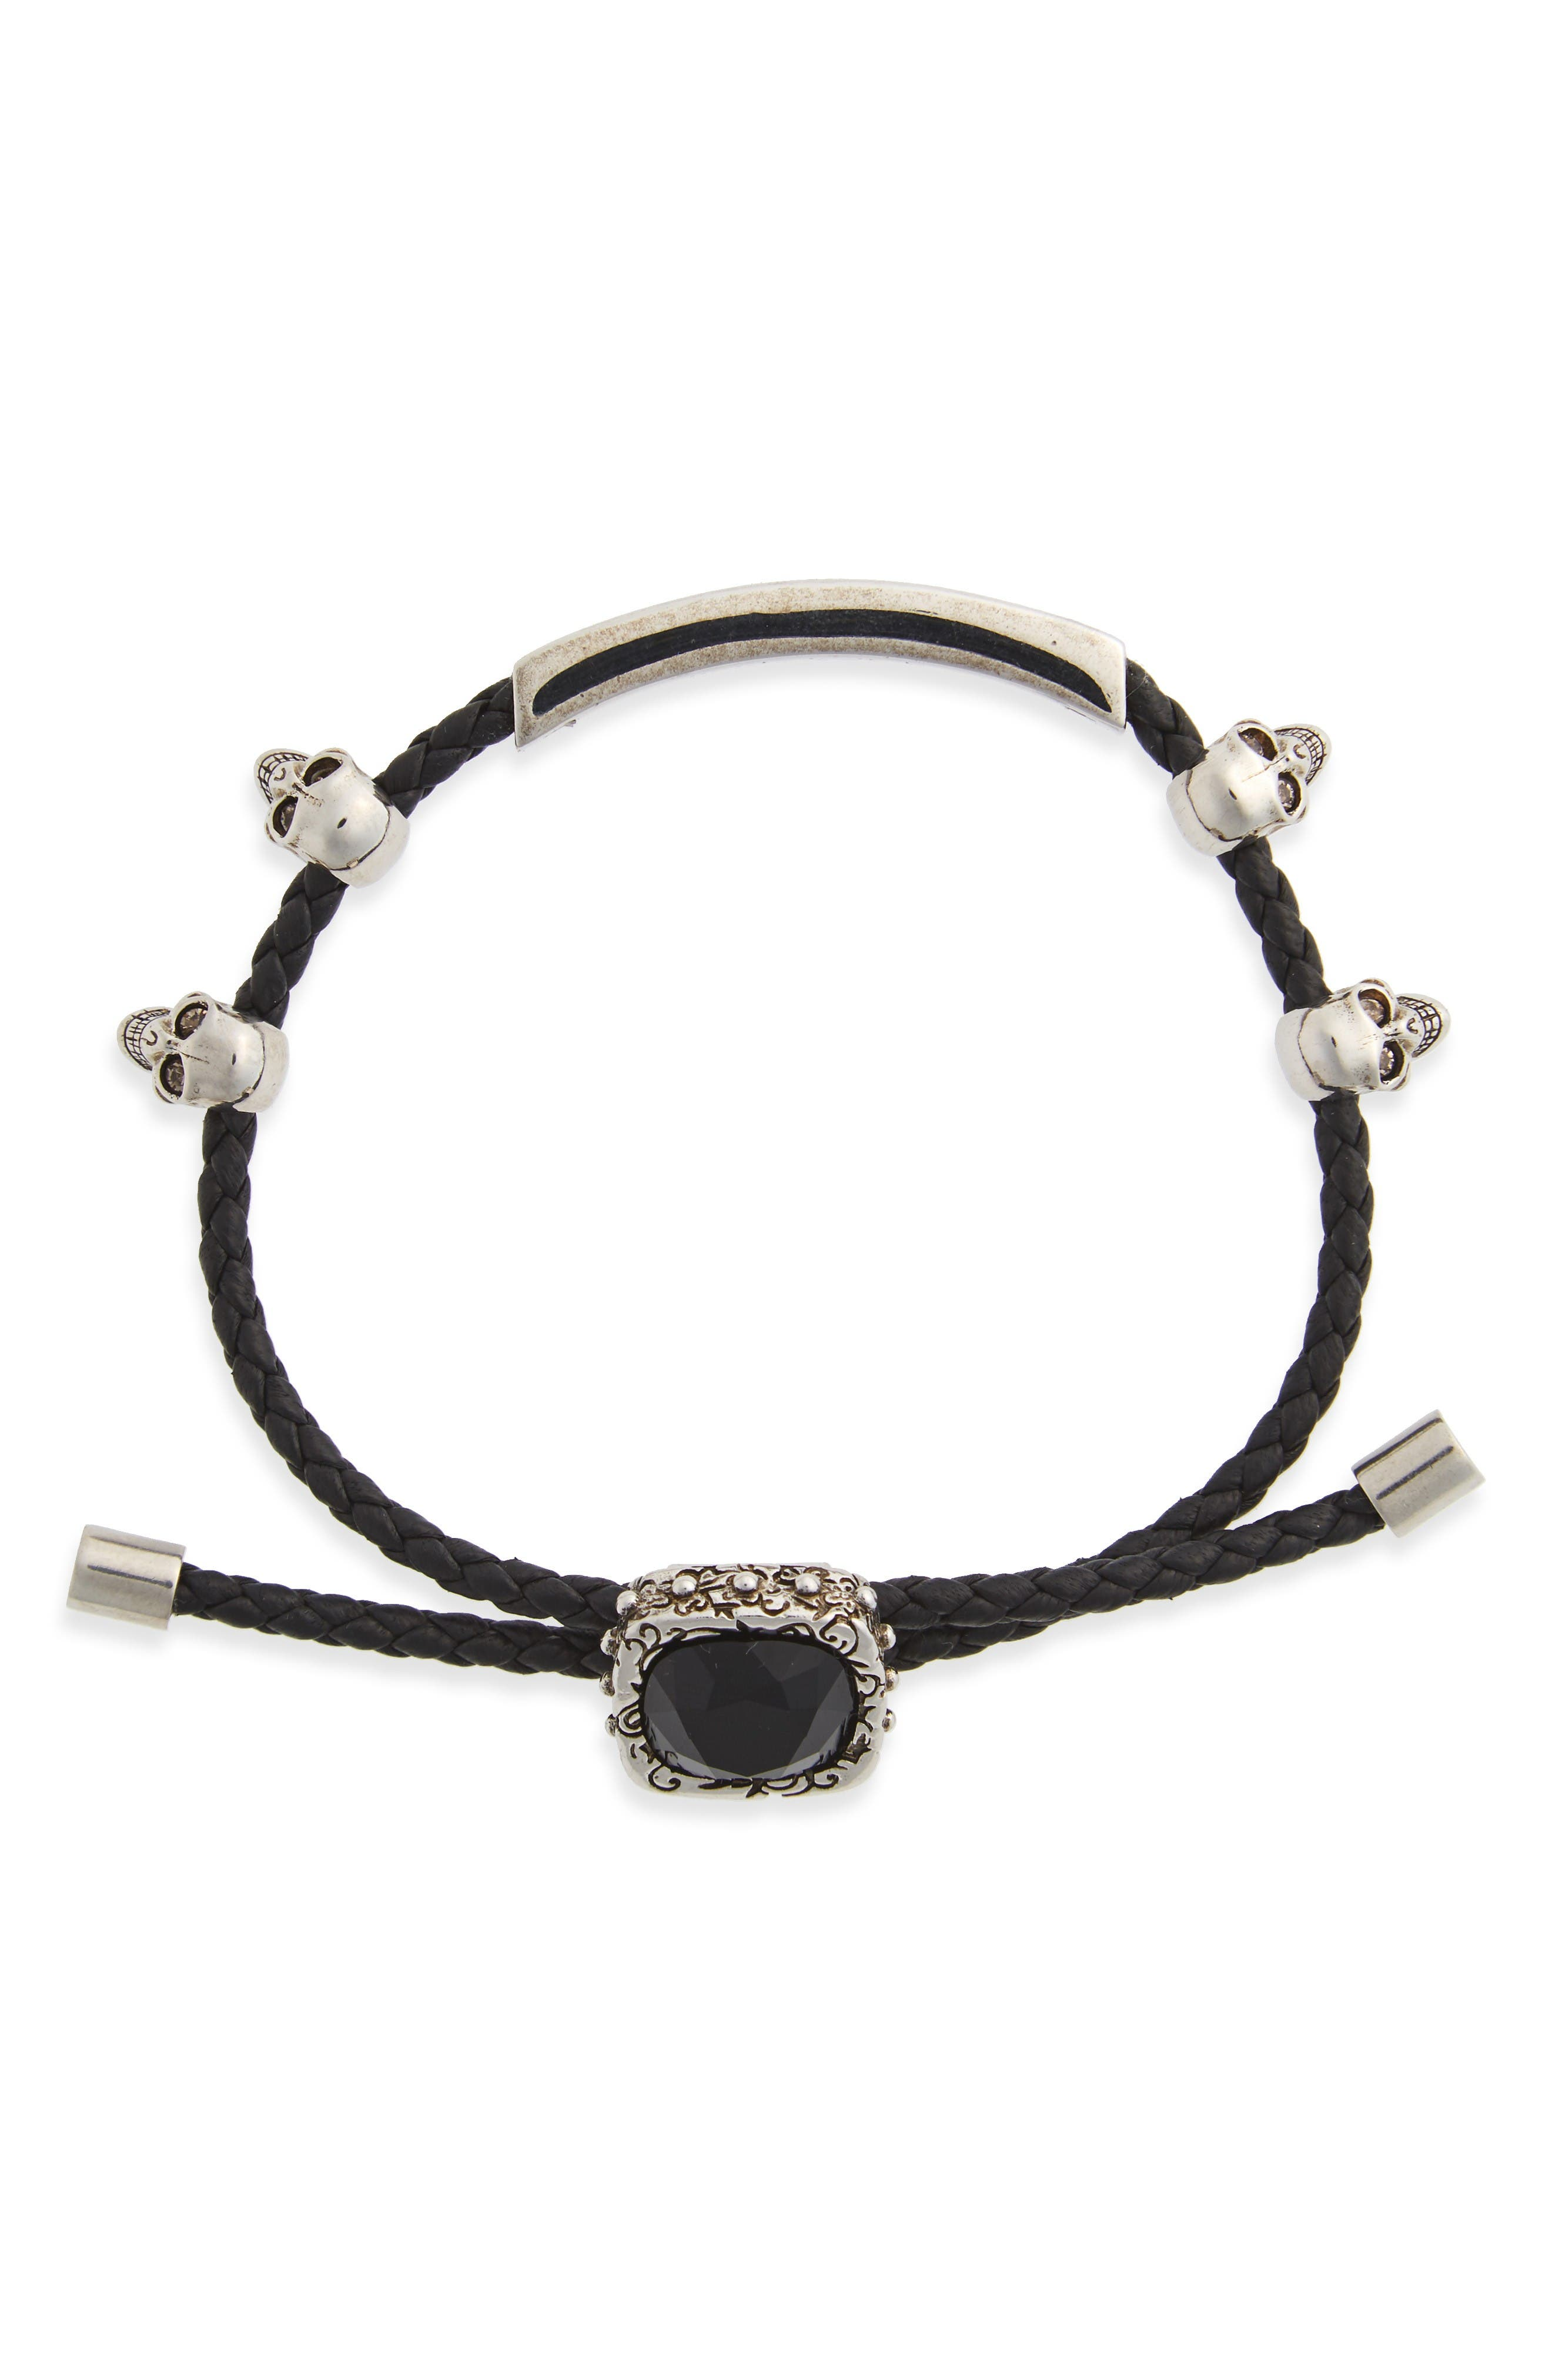 ALEXANDER MCQUEEN Jewel Friendship Bracelet